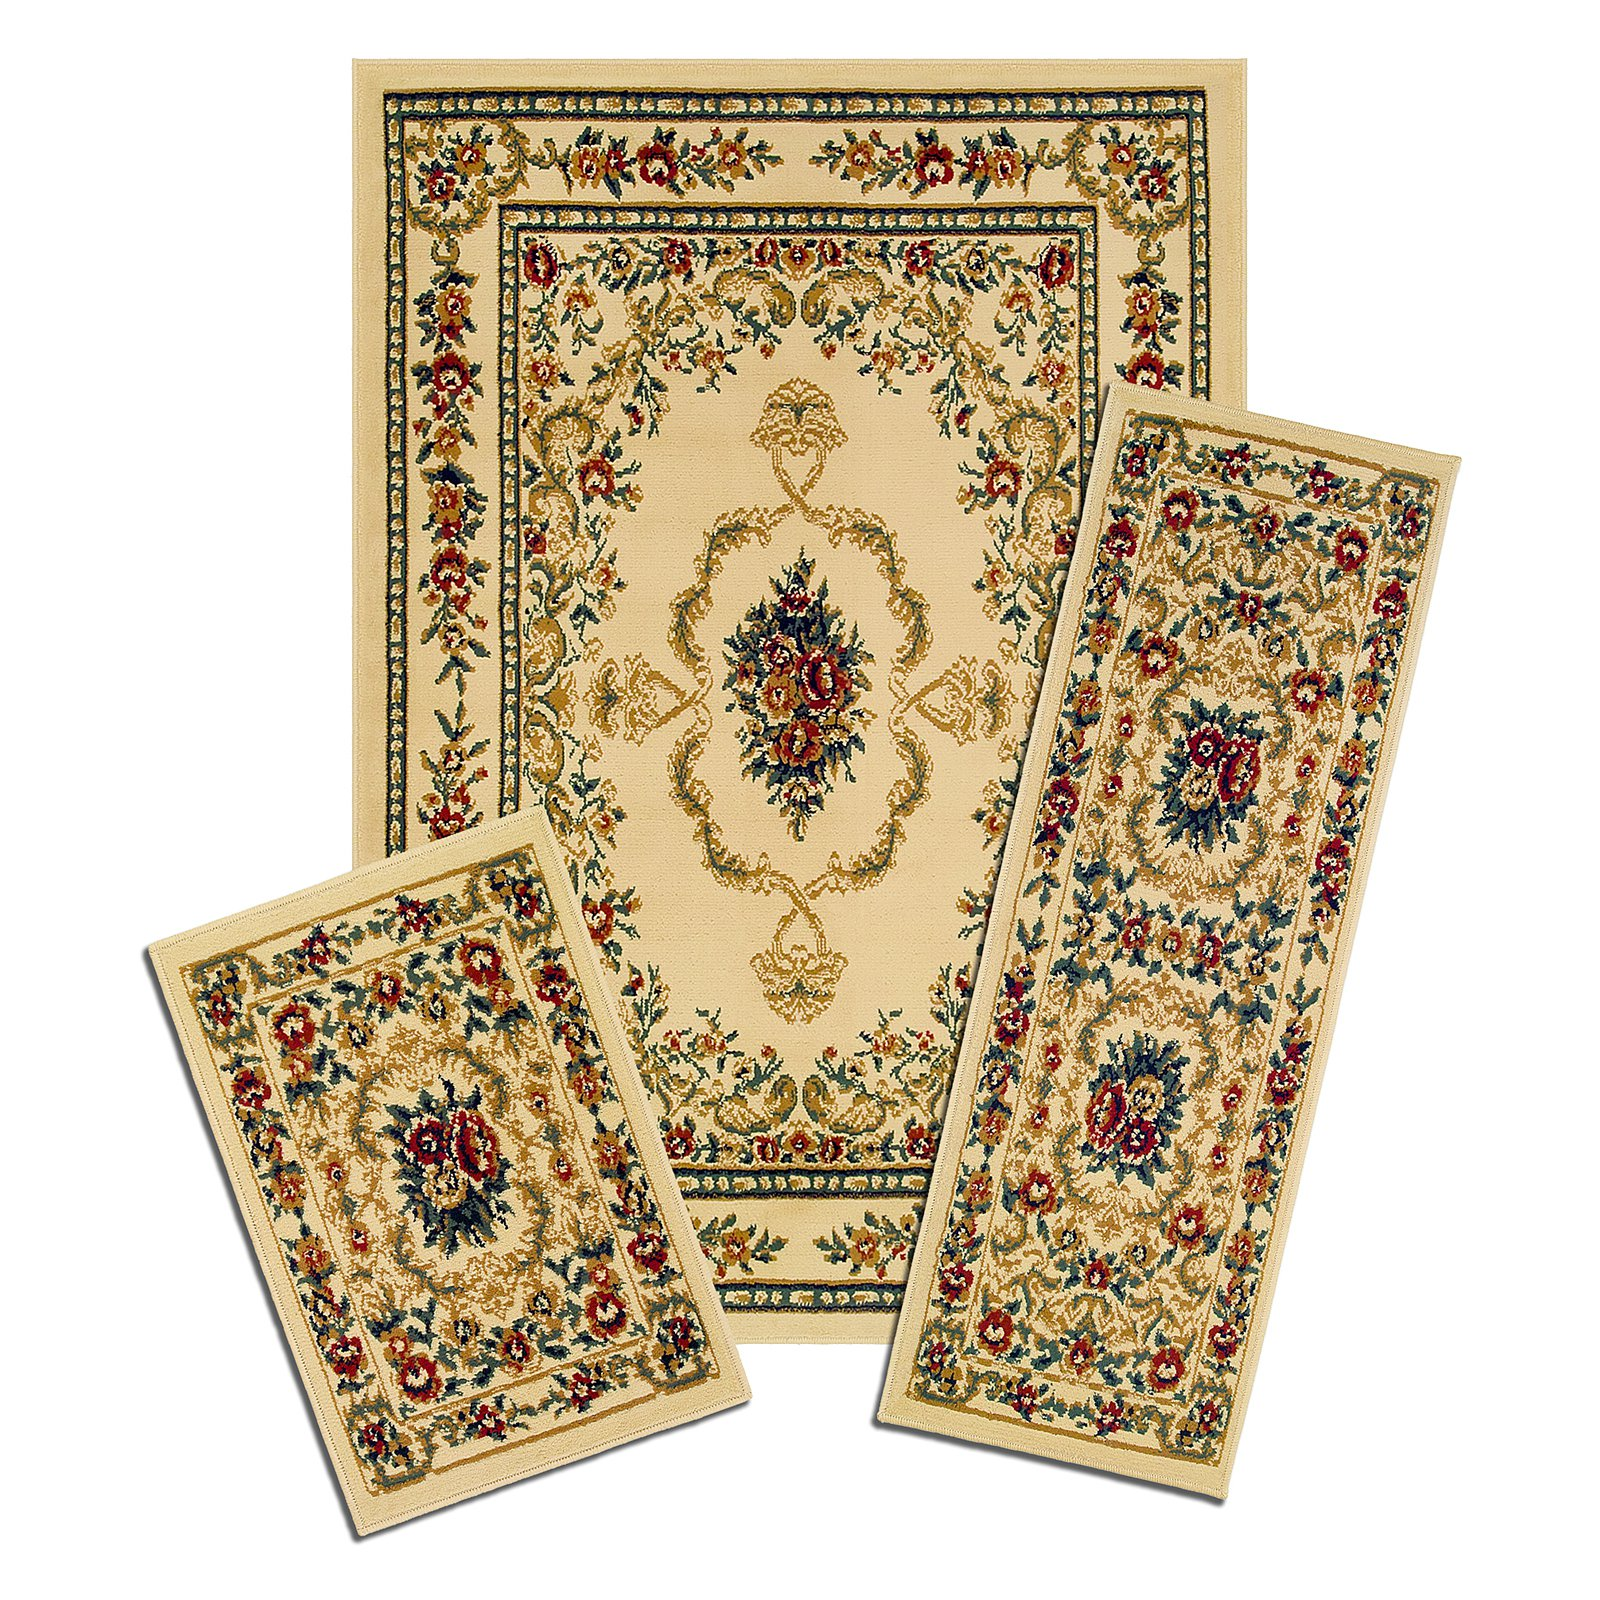 "Capri 3 Piece Rug Set, Savonnerie 3-Piece Capri Area Rug Set contains: 5' x 7' area rug with matching 22"" x 59"" runner and 22"" x 31"" mat"